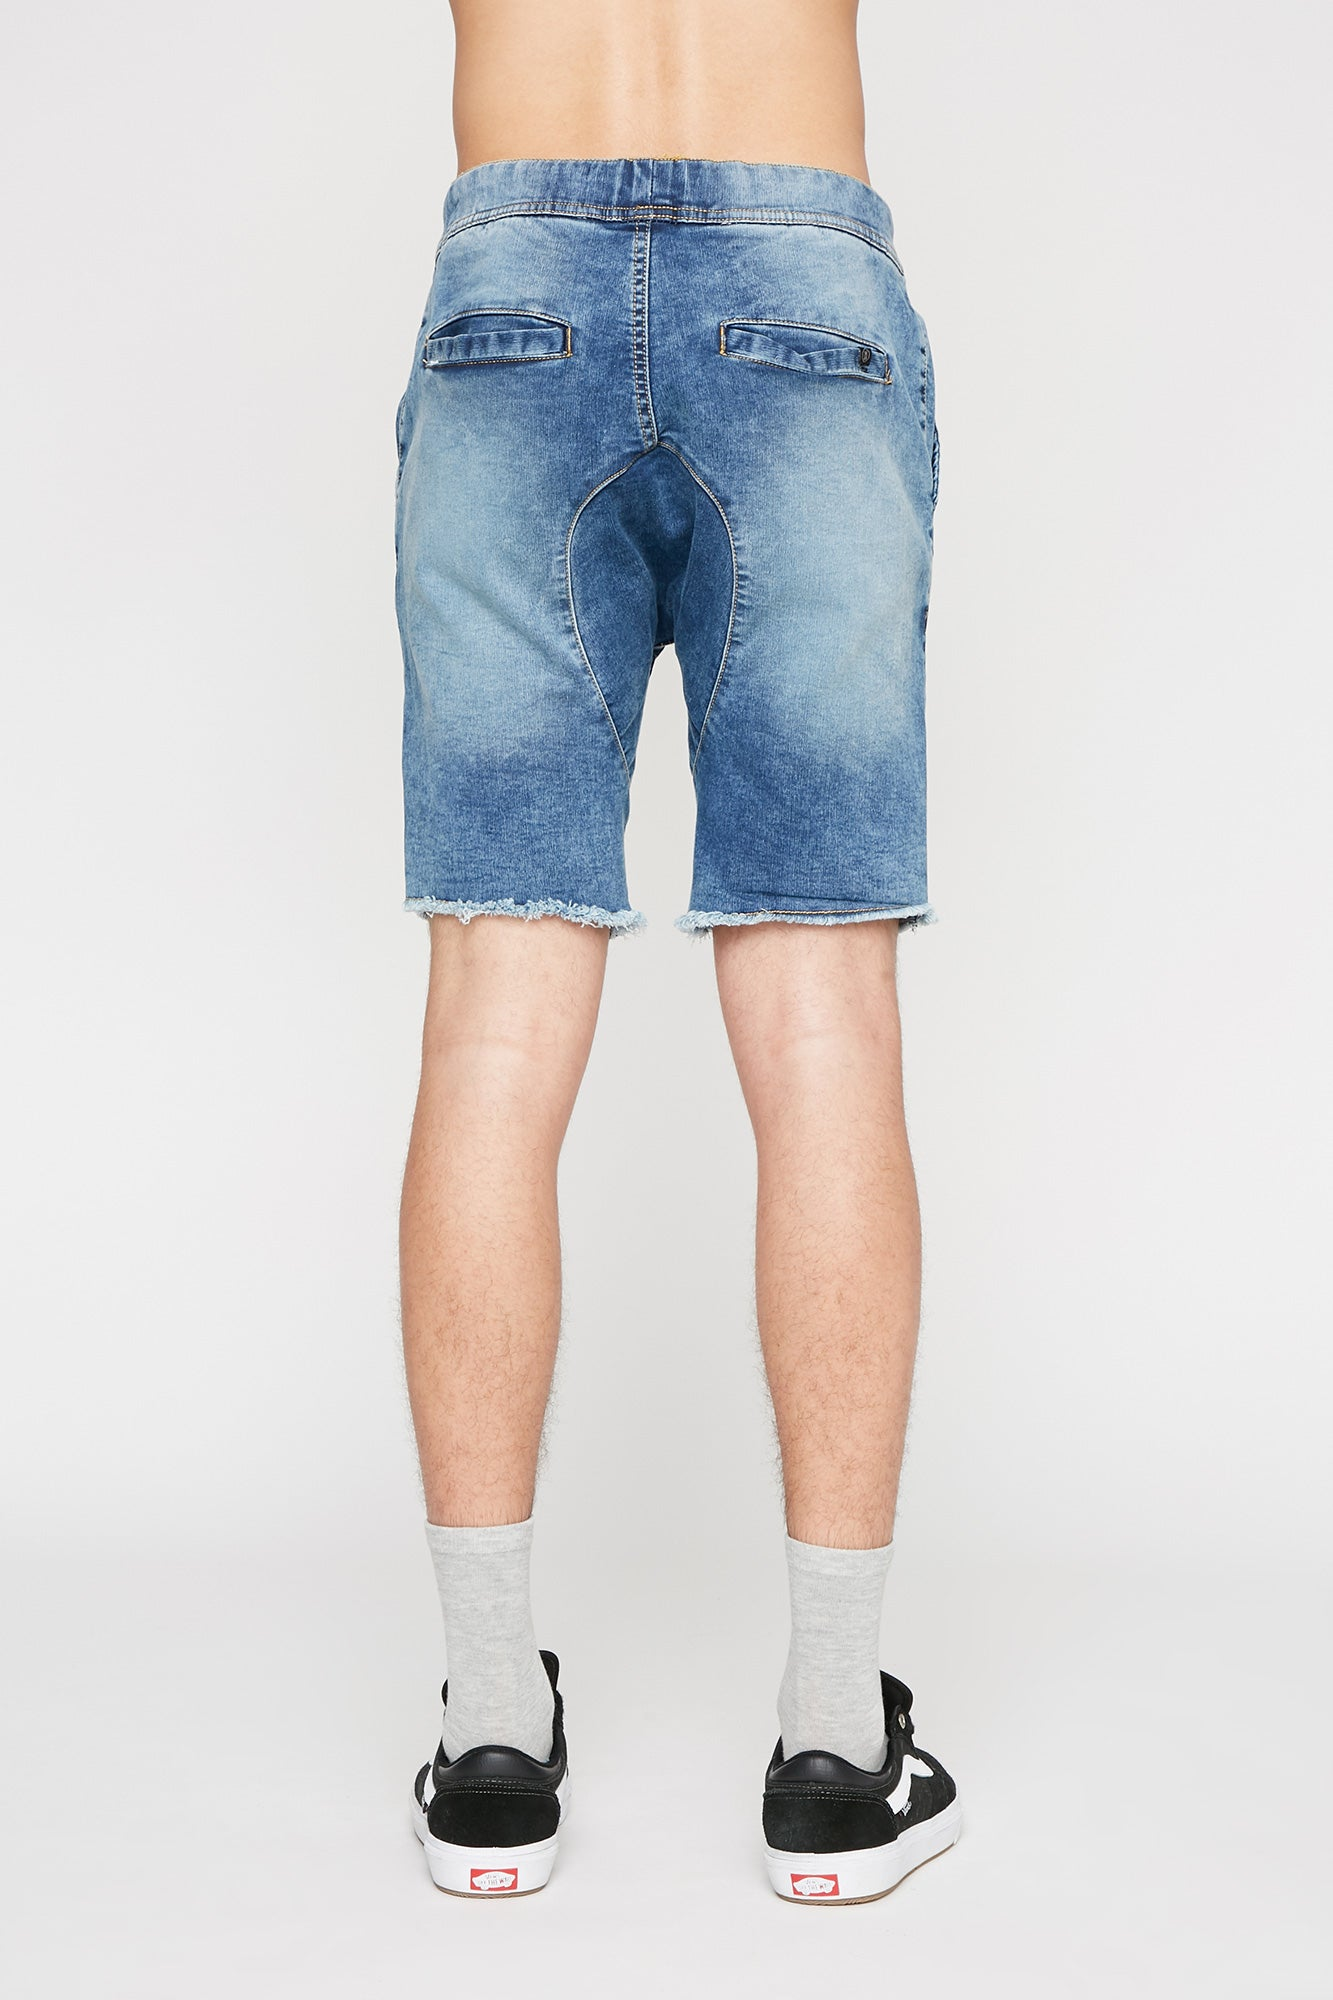 West 49 Mens Knit Denim Jogger Shorts